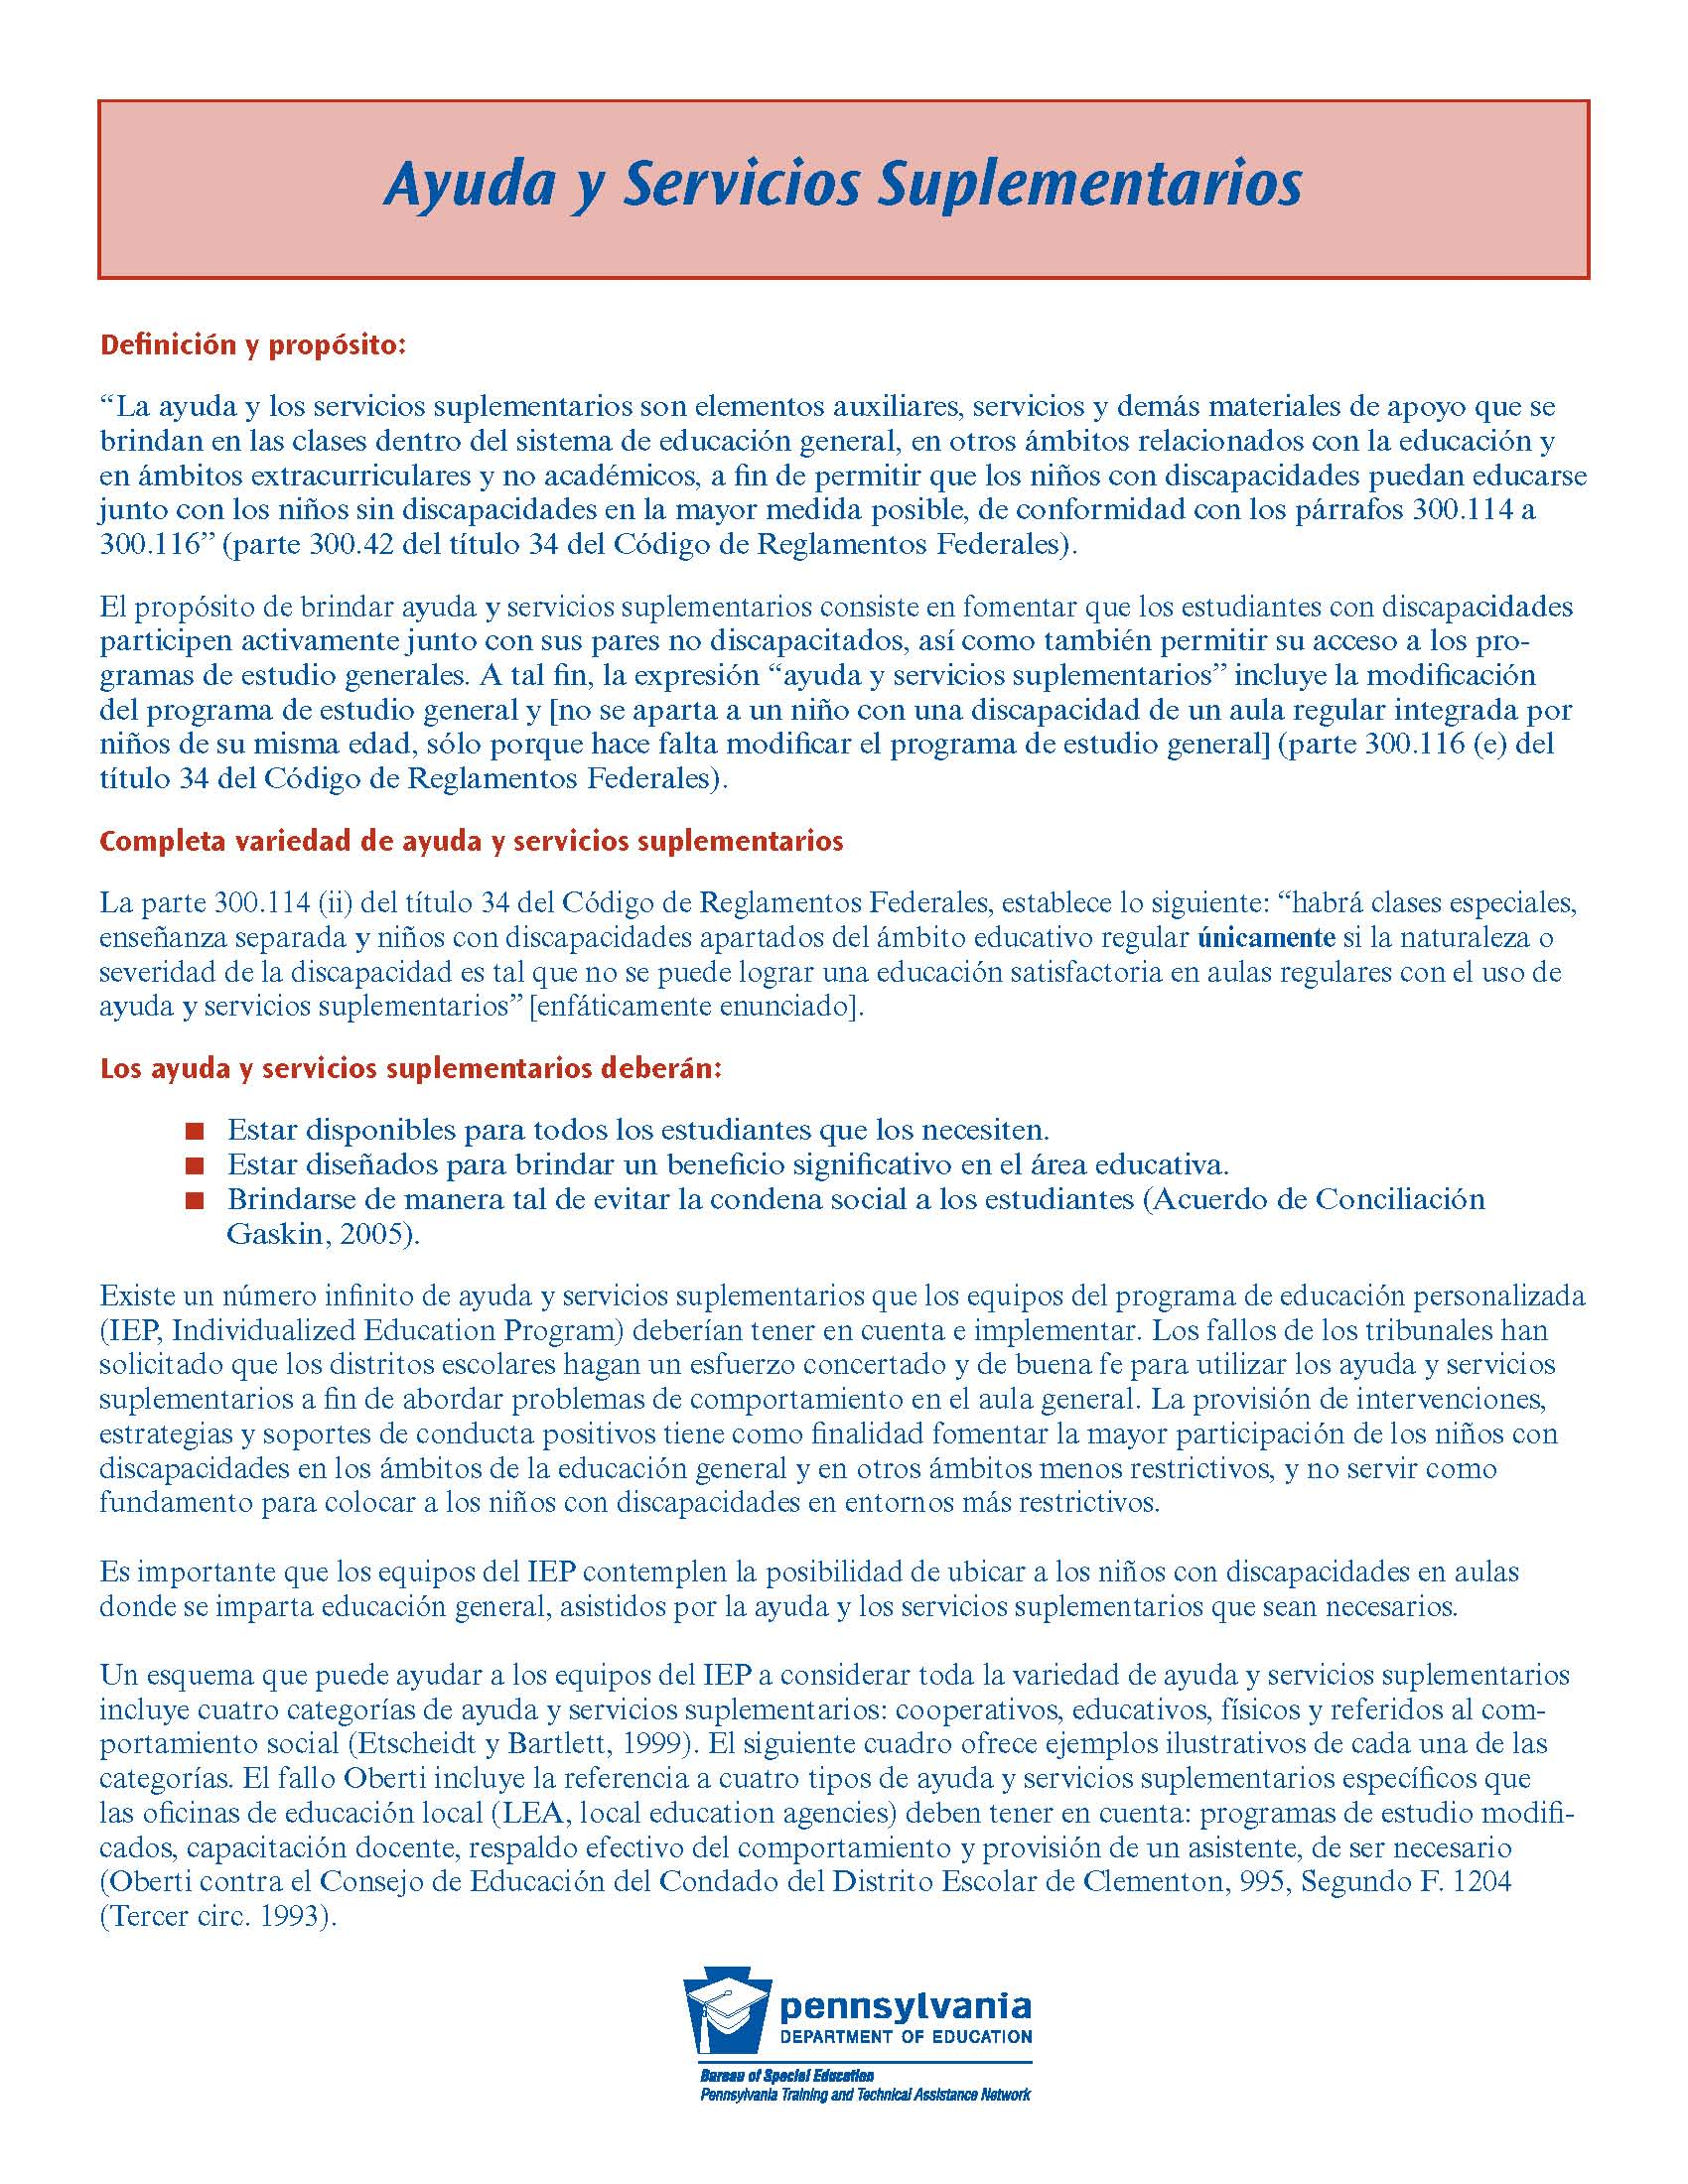 Supplementary Aids and Services (Spanish)